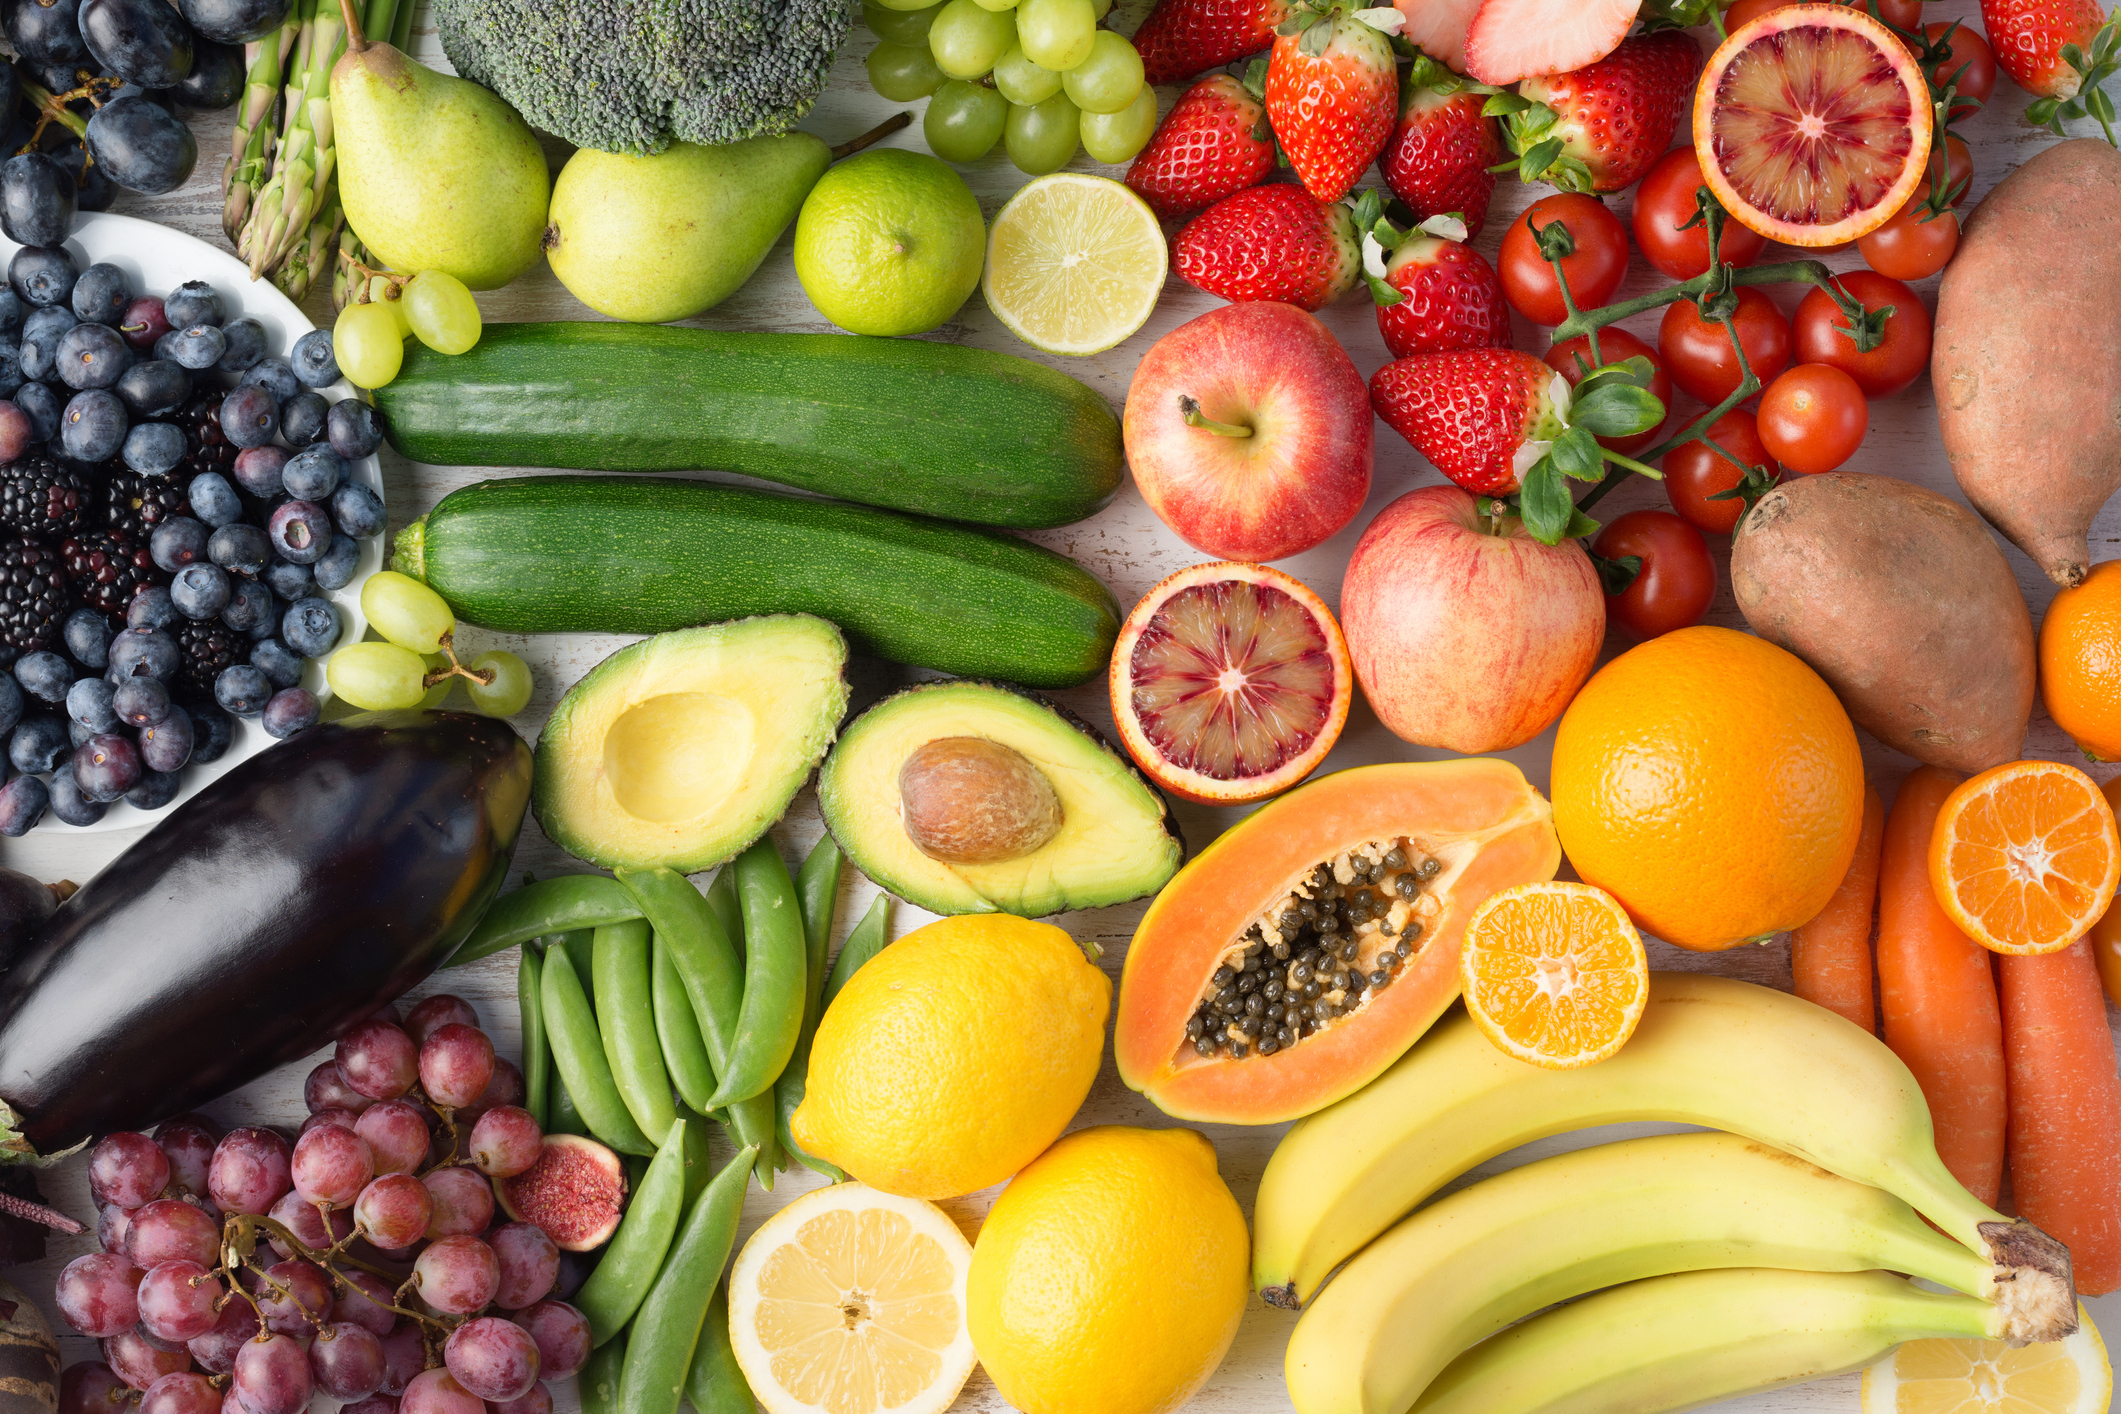 5 Easy Ways to Increase Fruits and Vegetables in Your Diet